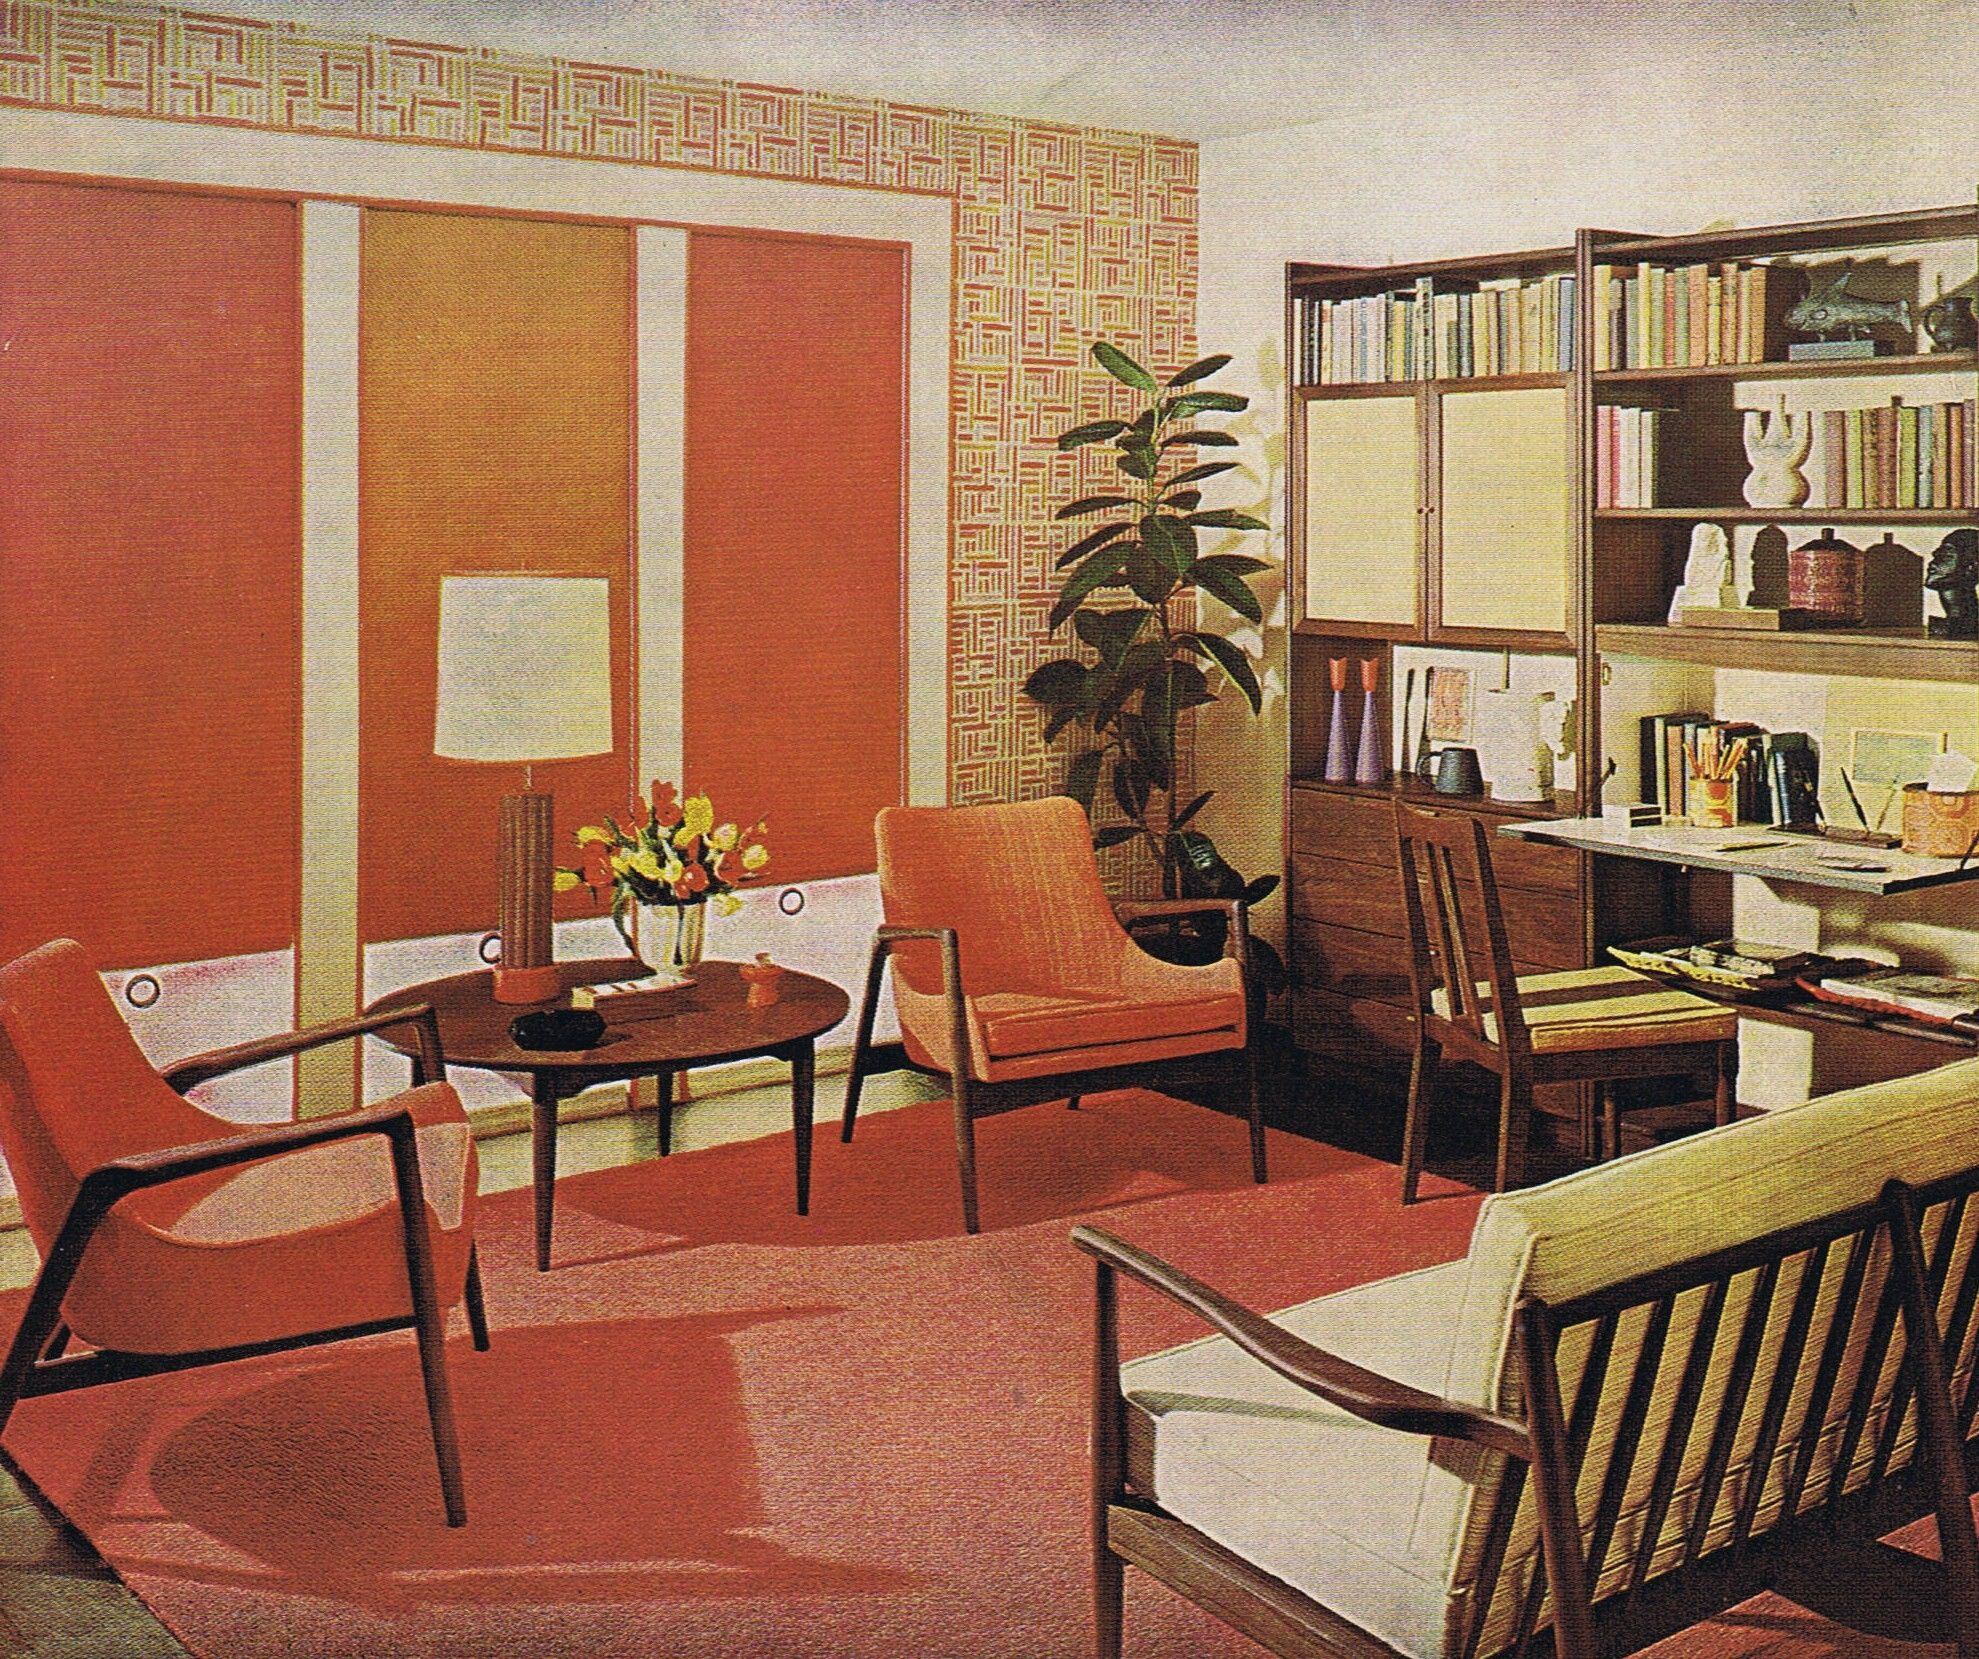 Interior Decorating Ideas For The Better Look: Better Homes And Gardens, 1962